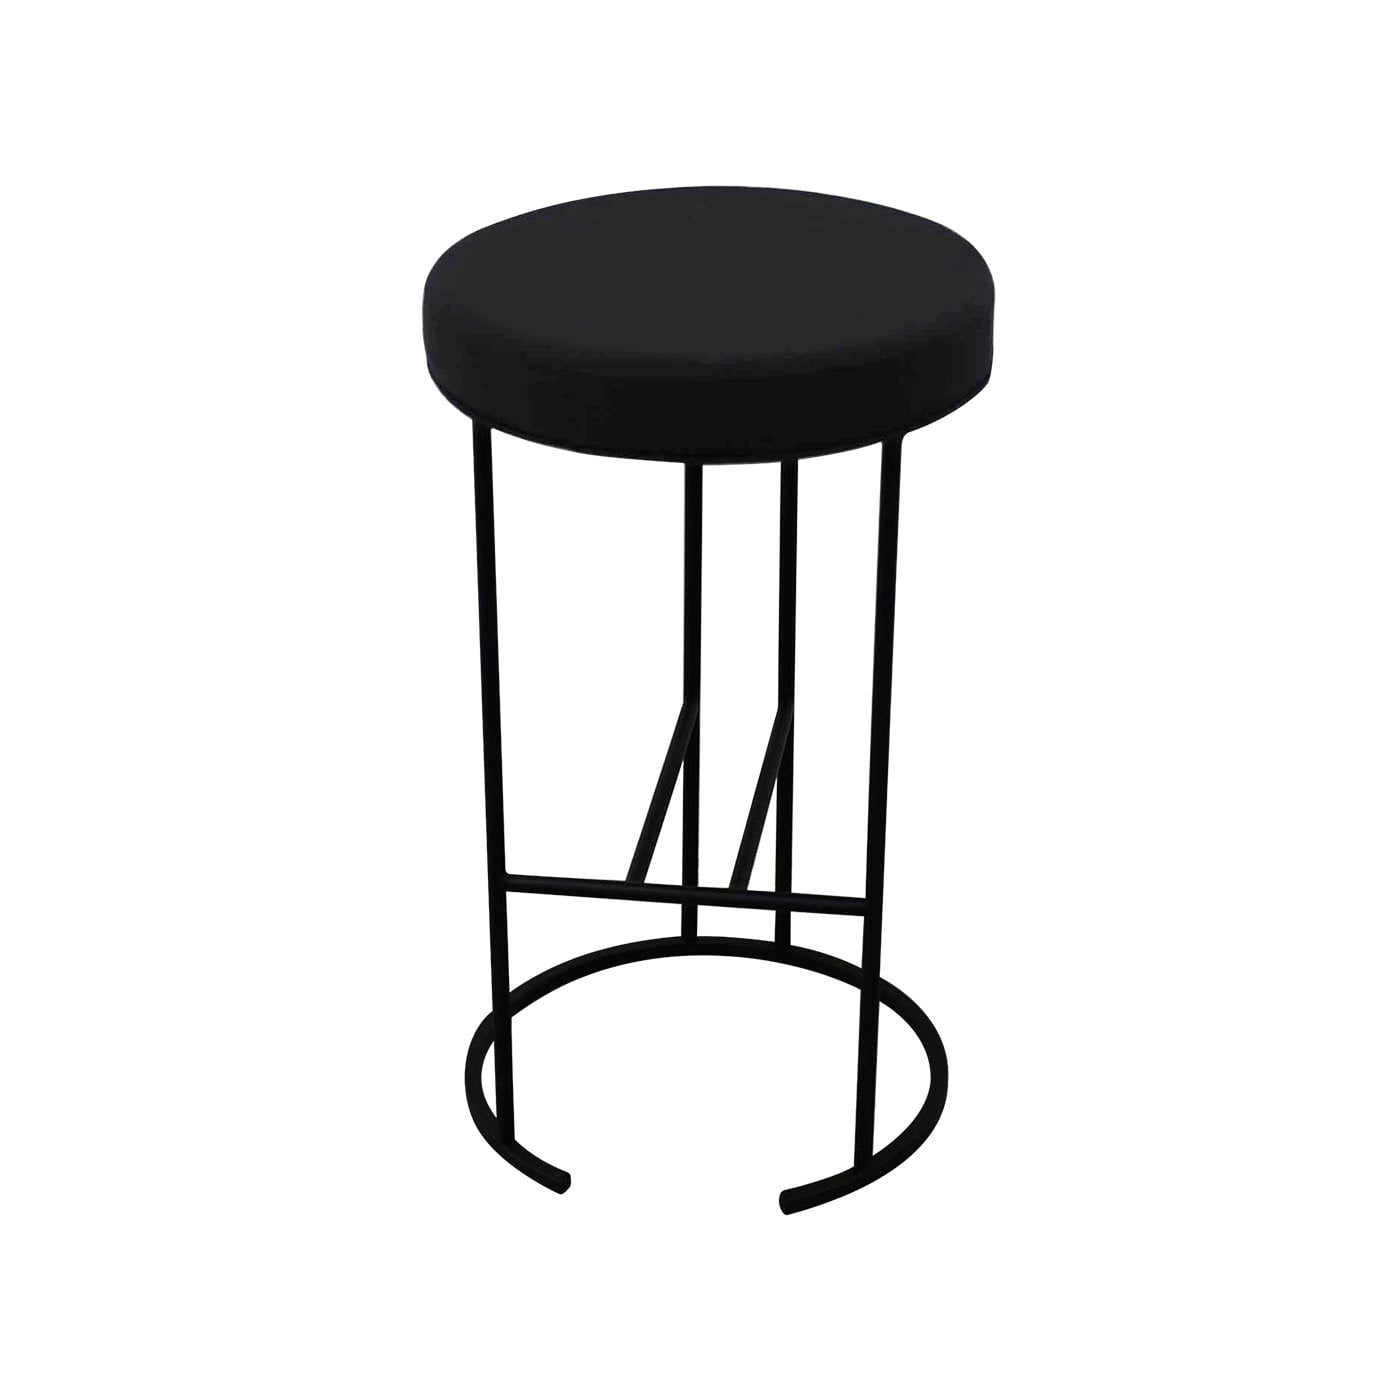 Blackley Kitchen Stool - Black